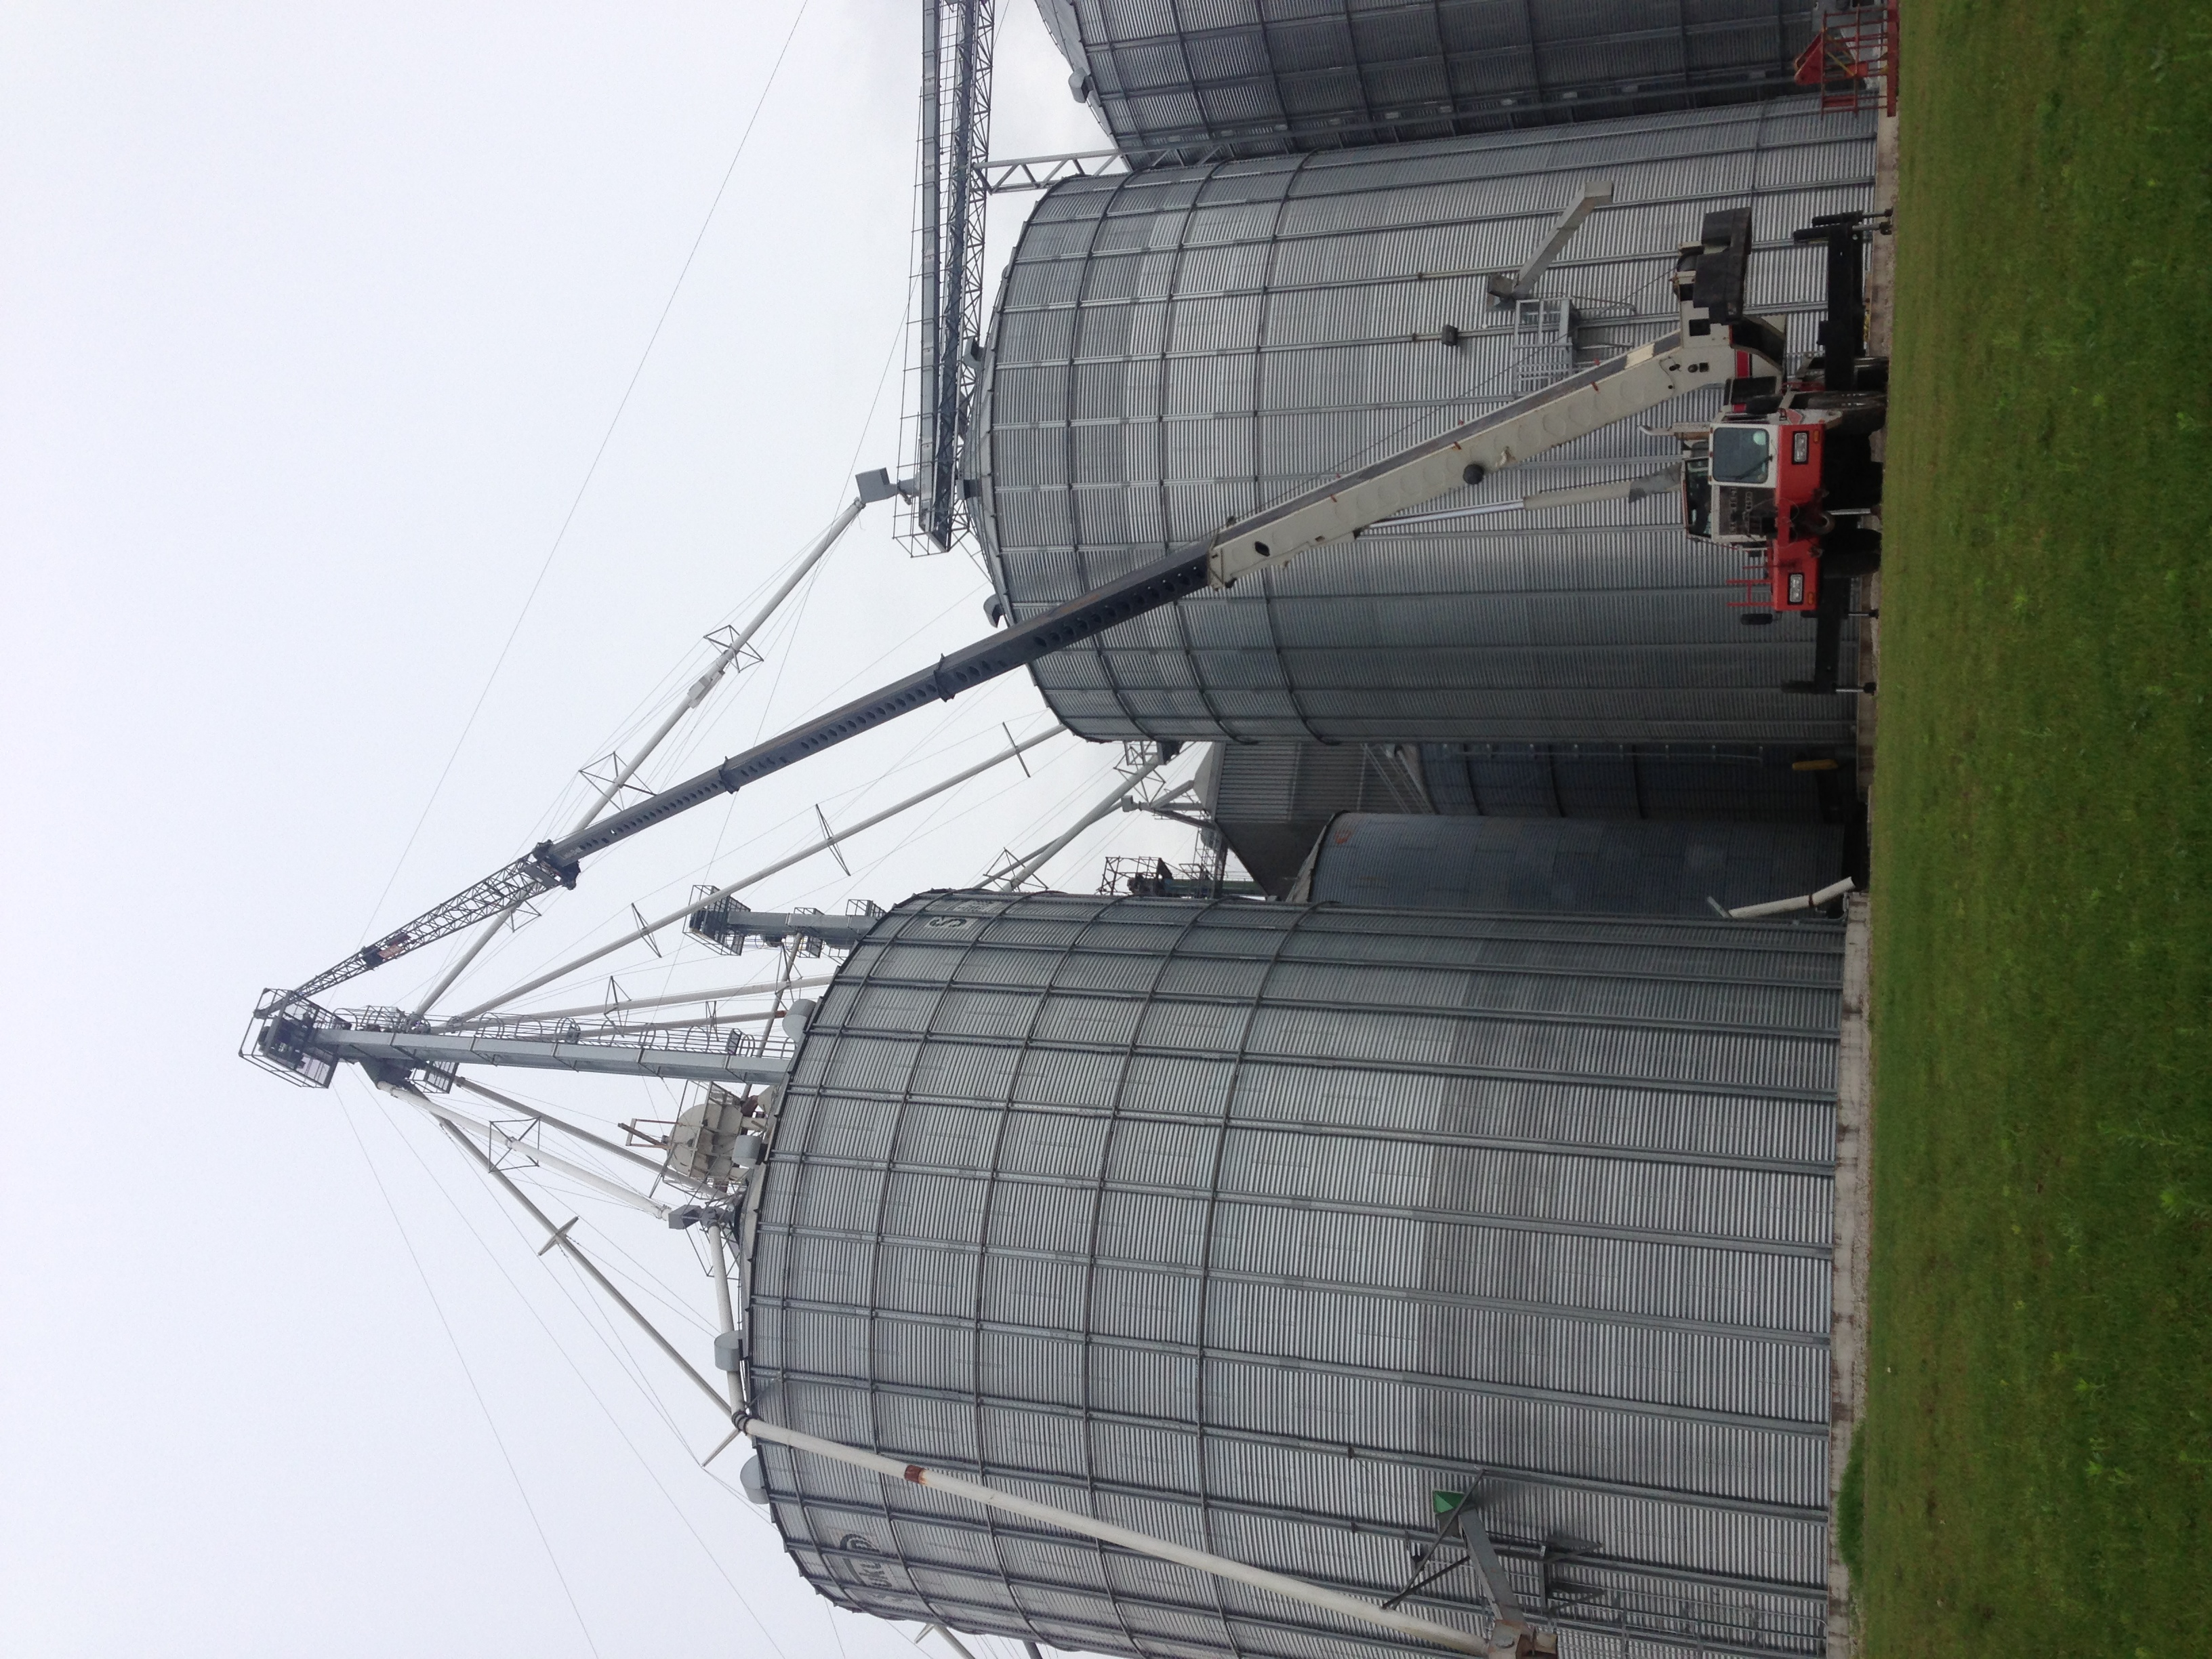 Grain bin spout lifted by mobile crane